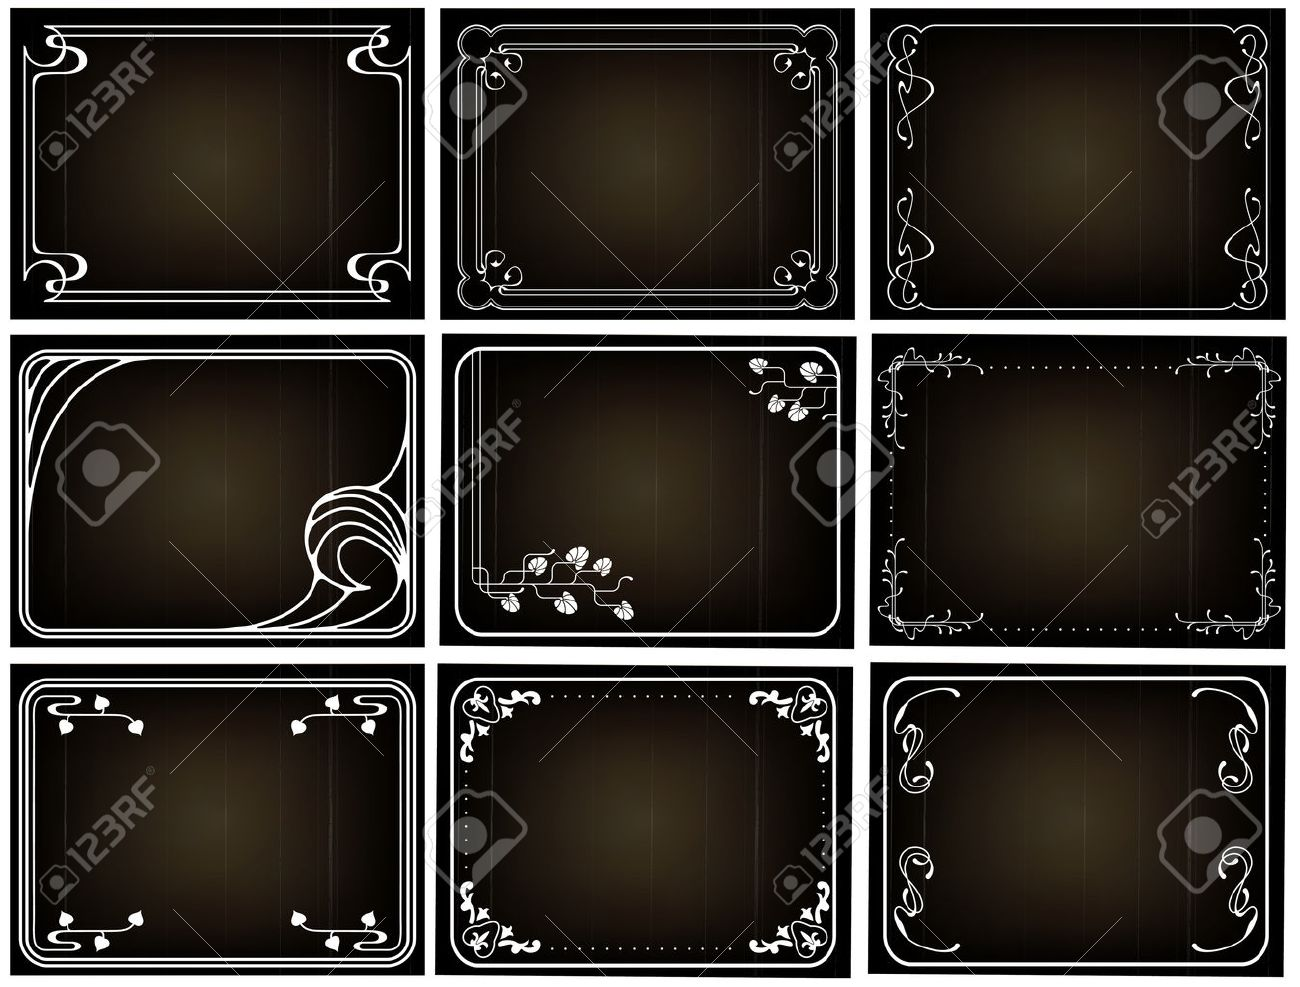 Old Silent Movie Frames In Art Nouveu Style Royalty Free Cliparts ...